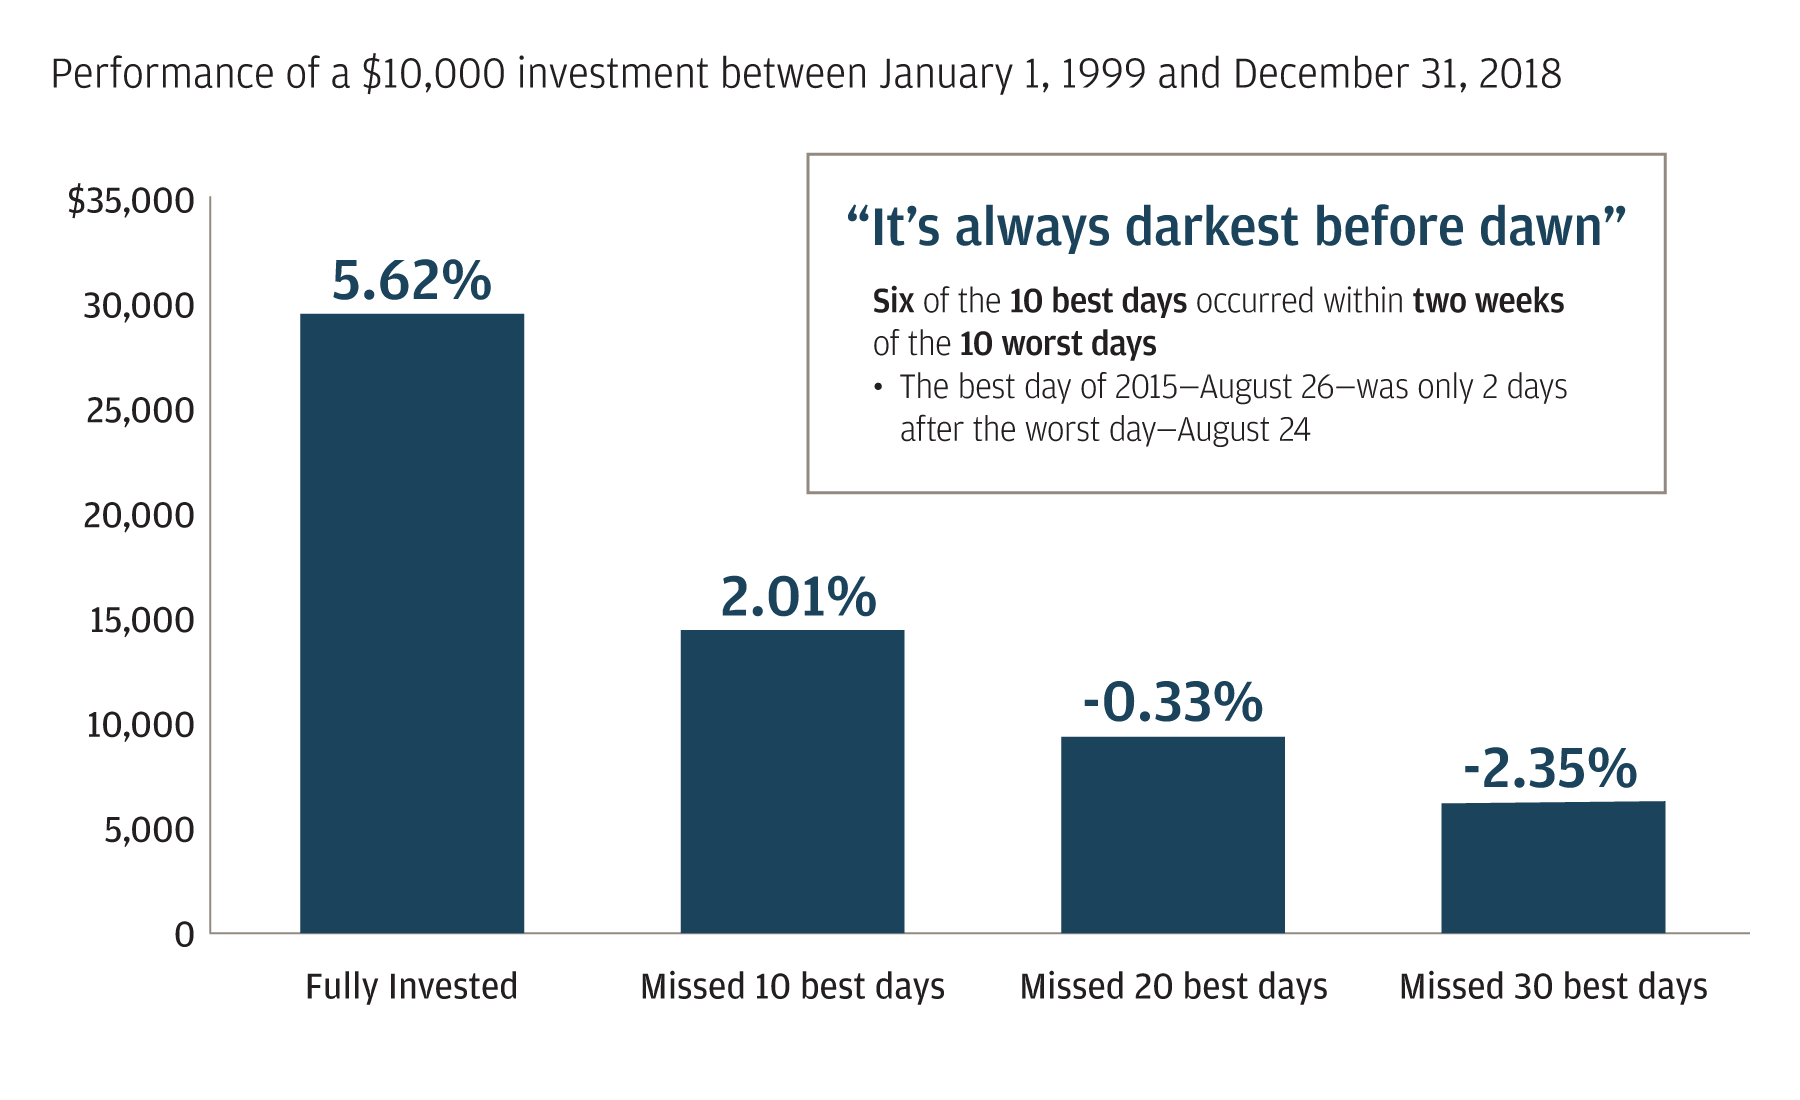 Bar chart shows performance of the S&P 500 from January 1999 through December 2018 in four example portfolios: Fully invested through this time period, missed the 10 best days in this time period, missed 20 best days in this time period, and missed 30 best days in this time period. The chart highlights that a portfolio that stayed fully invested during this time period (despite the highs and lows of the market cycle) saw the highest return.